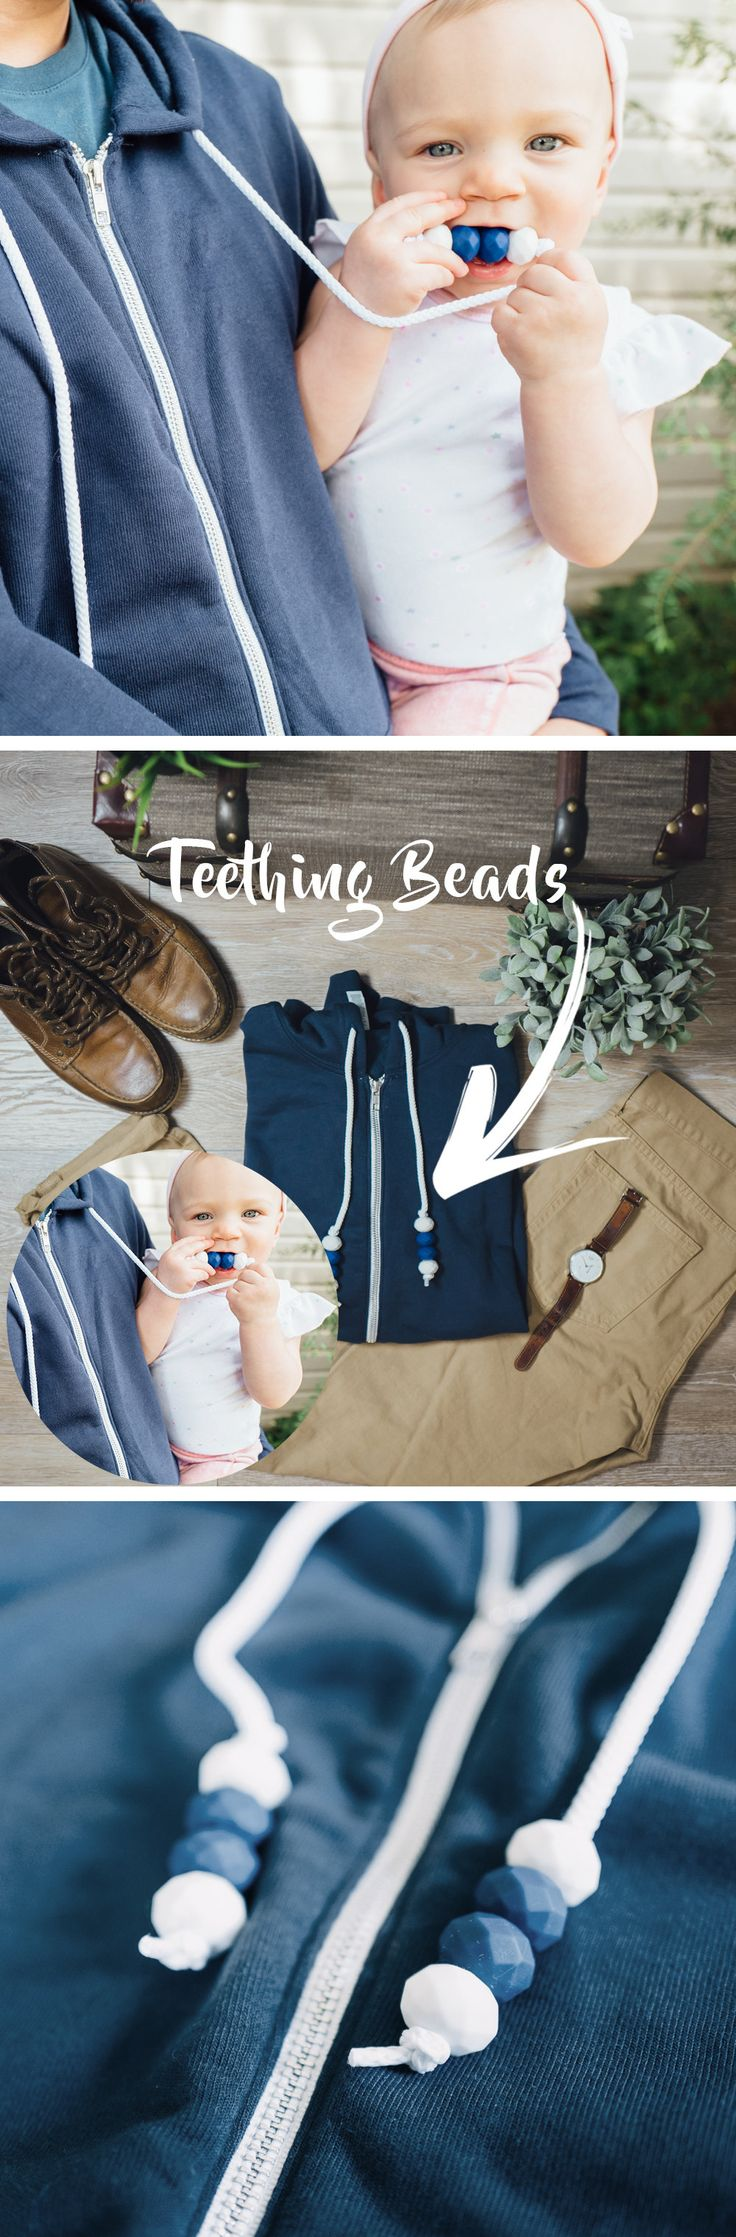 Men's hoodie with built-in silicone teething beads! Sweatshirt with Teething Beads // Men's (Size XL) // Teething Hoodie // Blue + White / Gift for New Dad, New Father // Dad Sweatshirt | teething jewellery for Dad's!